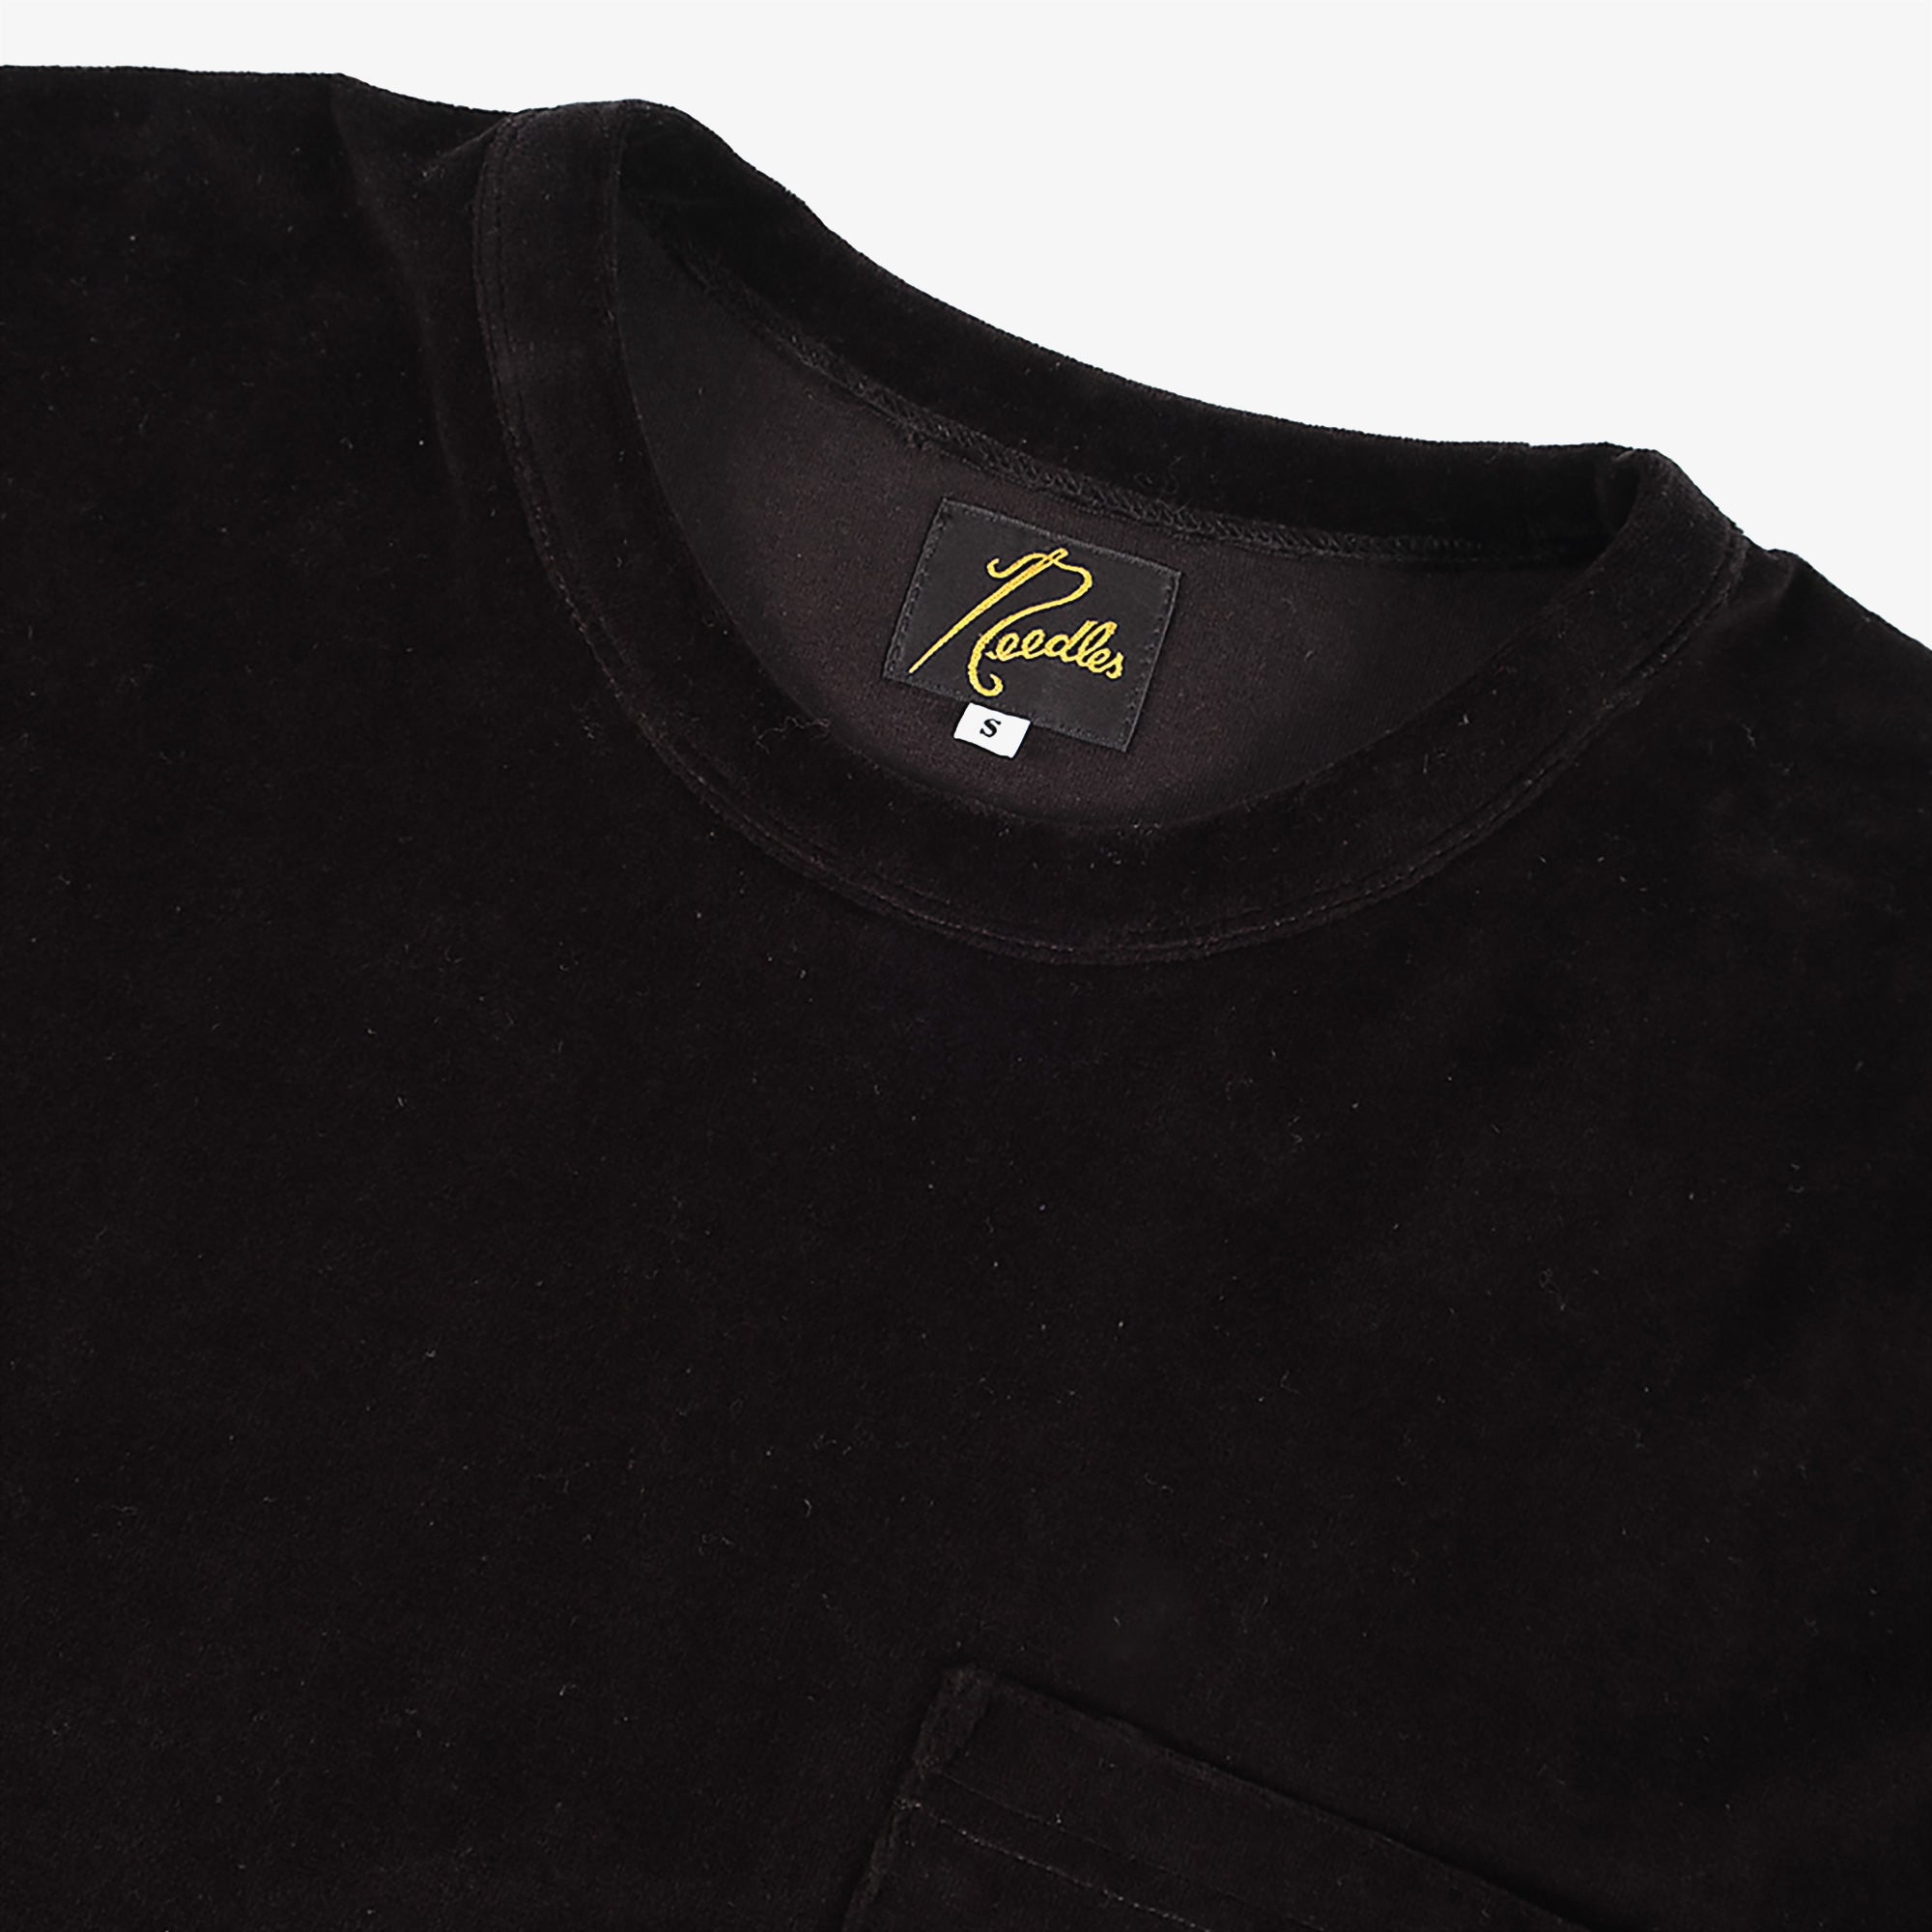 Needles Short Sleeve Pocket T-Shirt Velour - Black 3